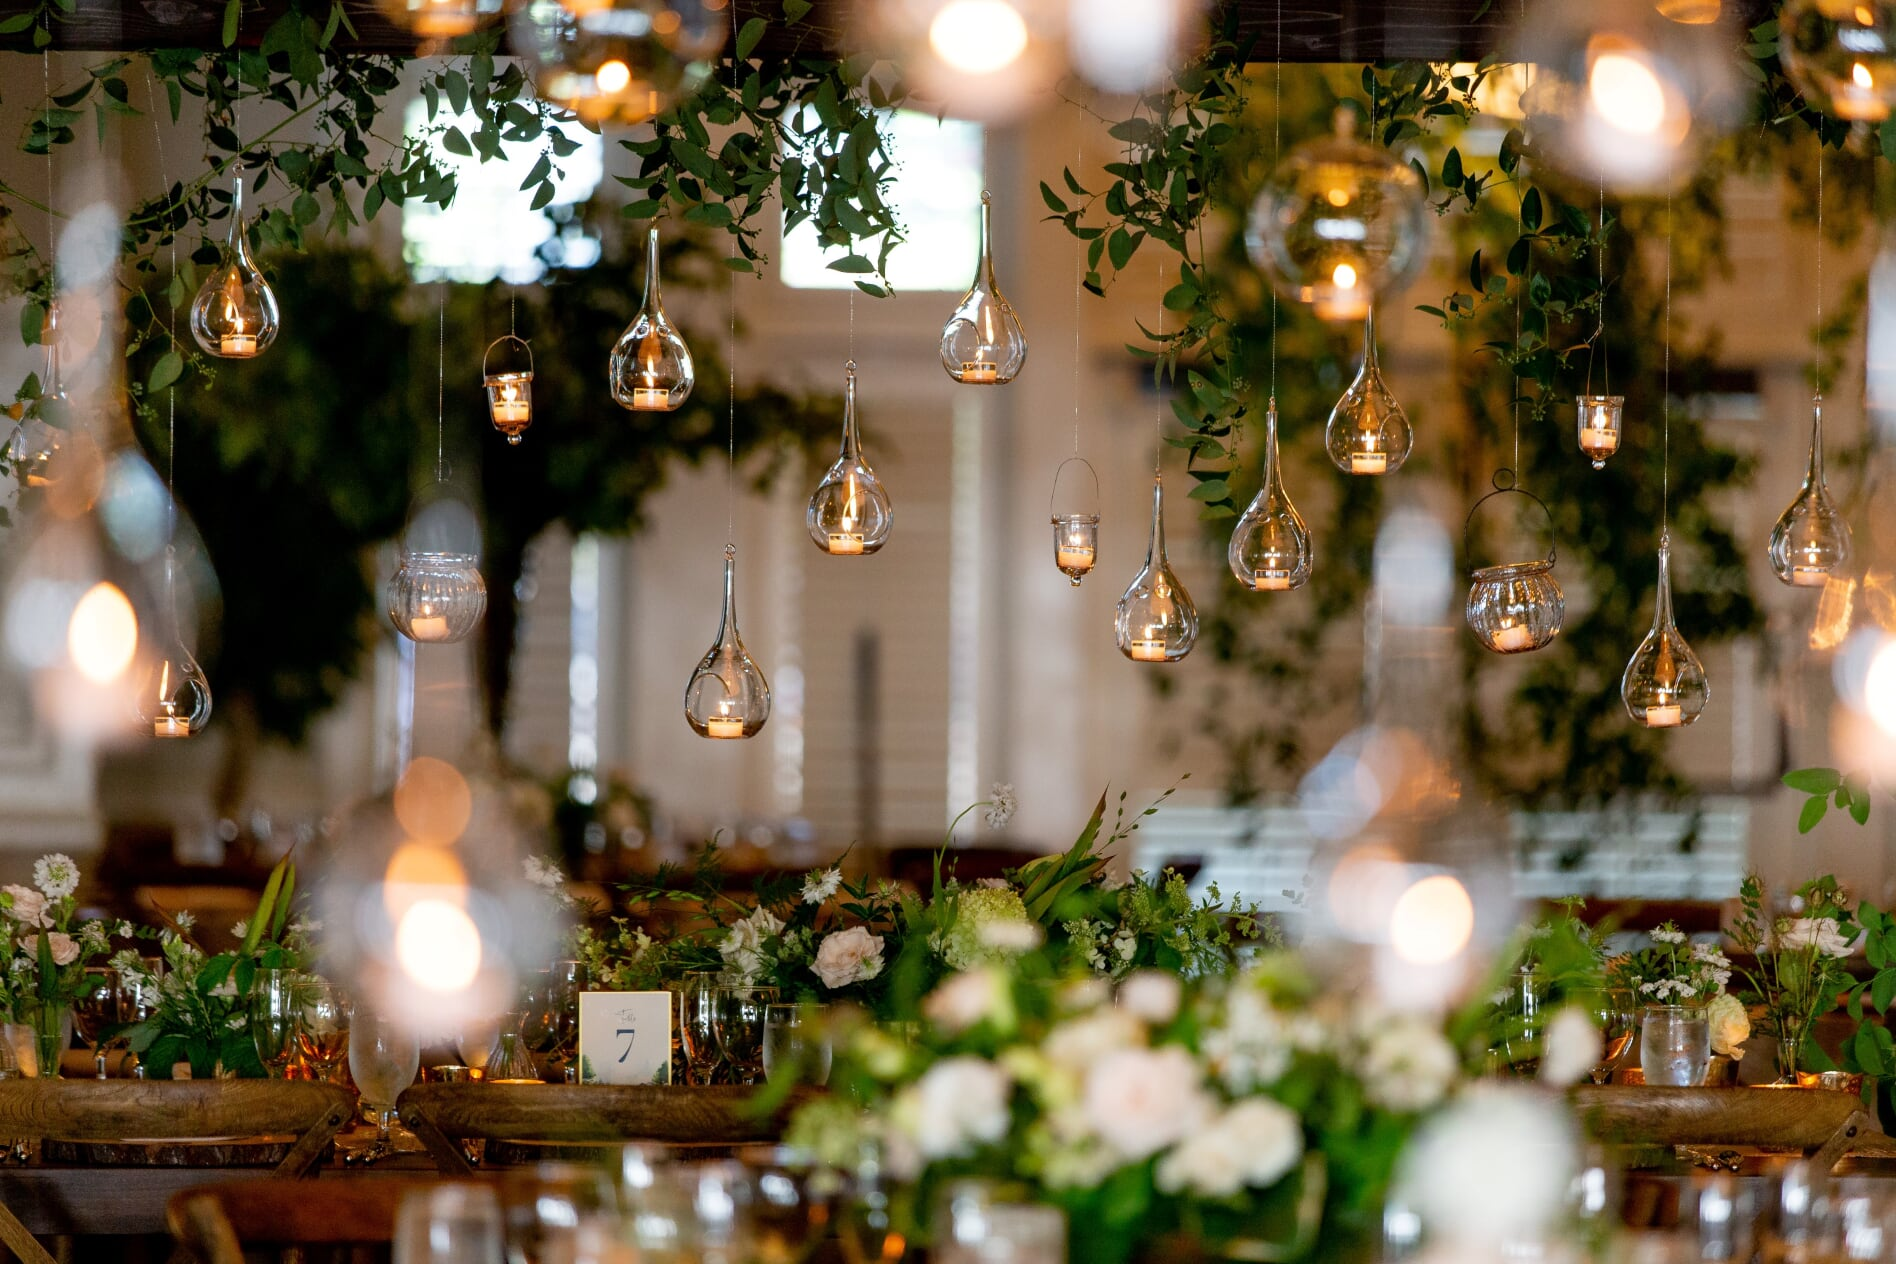 hanging votives over long tables with white centerpiece